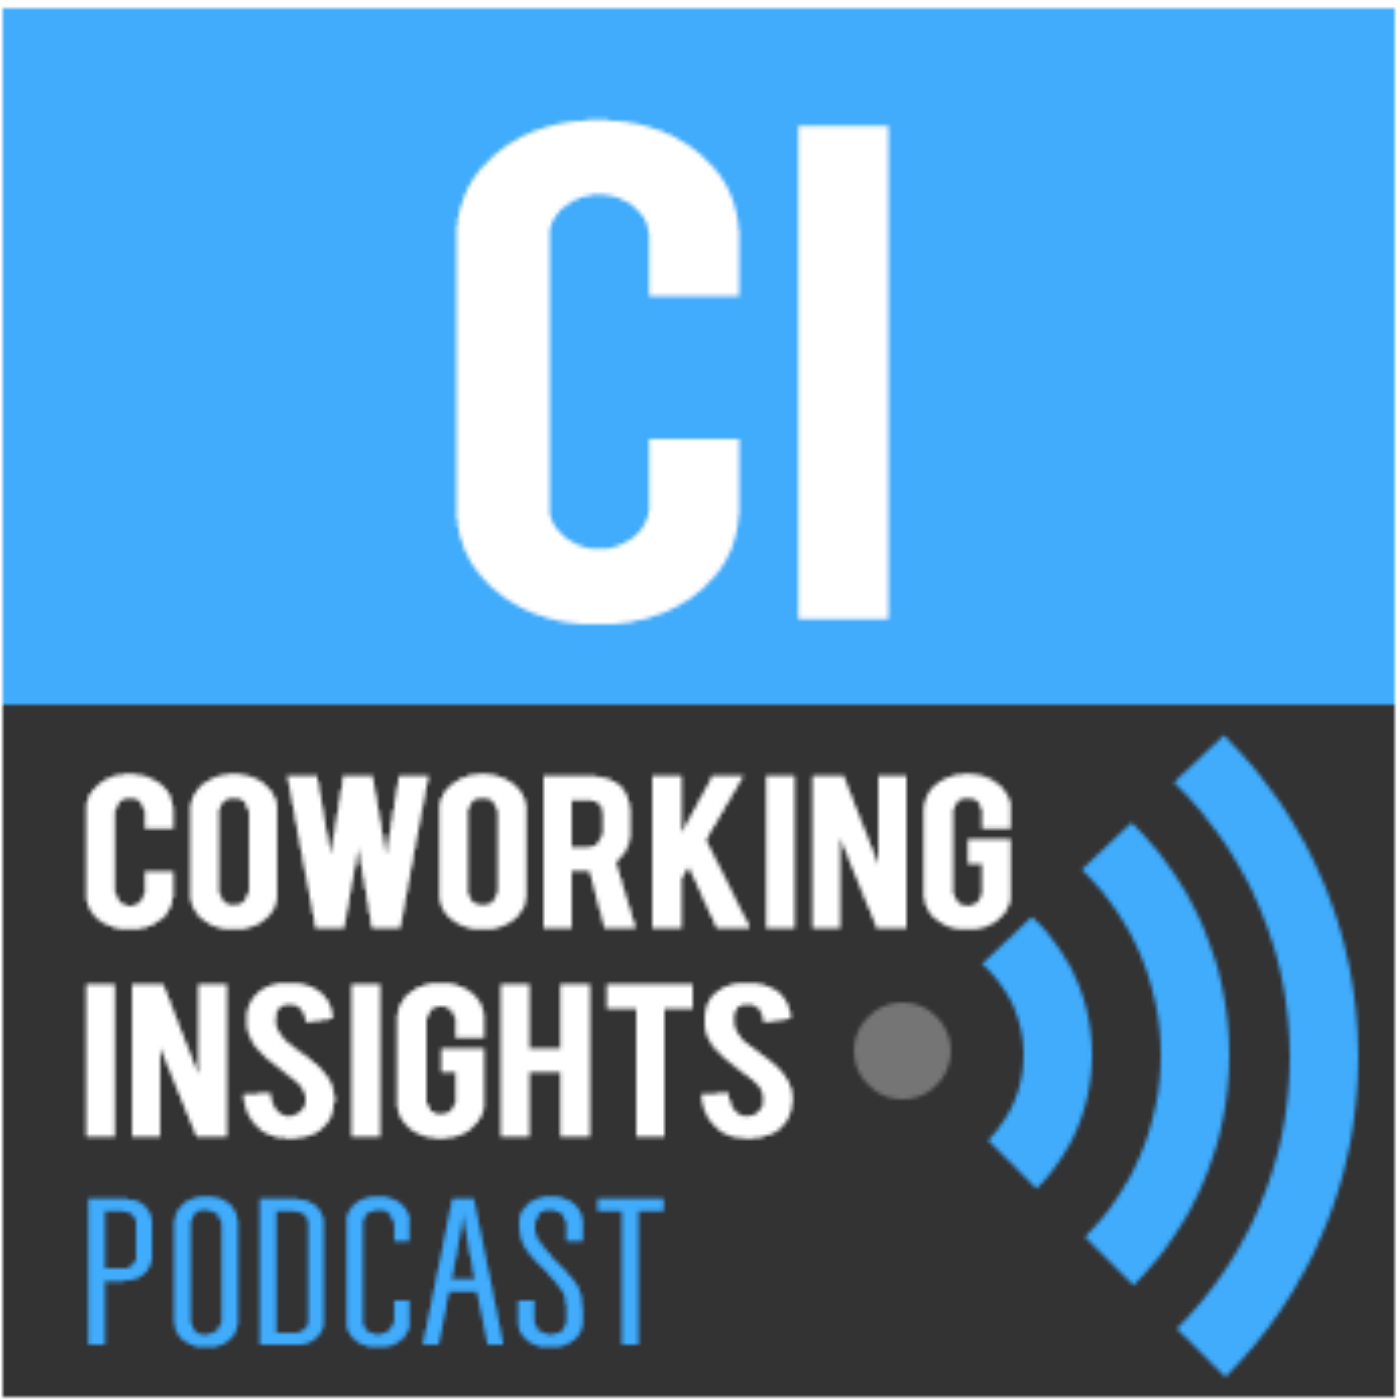 Ep 12 - [Data] Has the Global Coworking Recovery Begun?